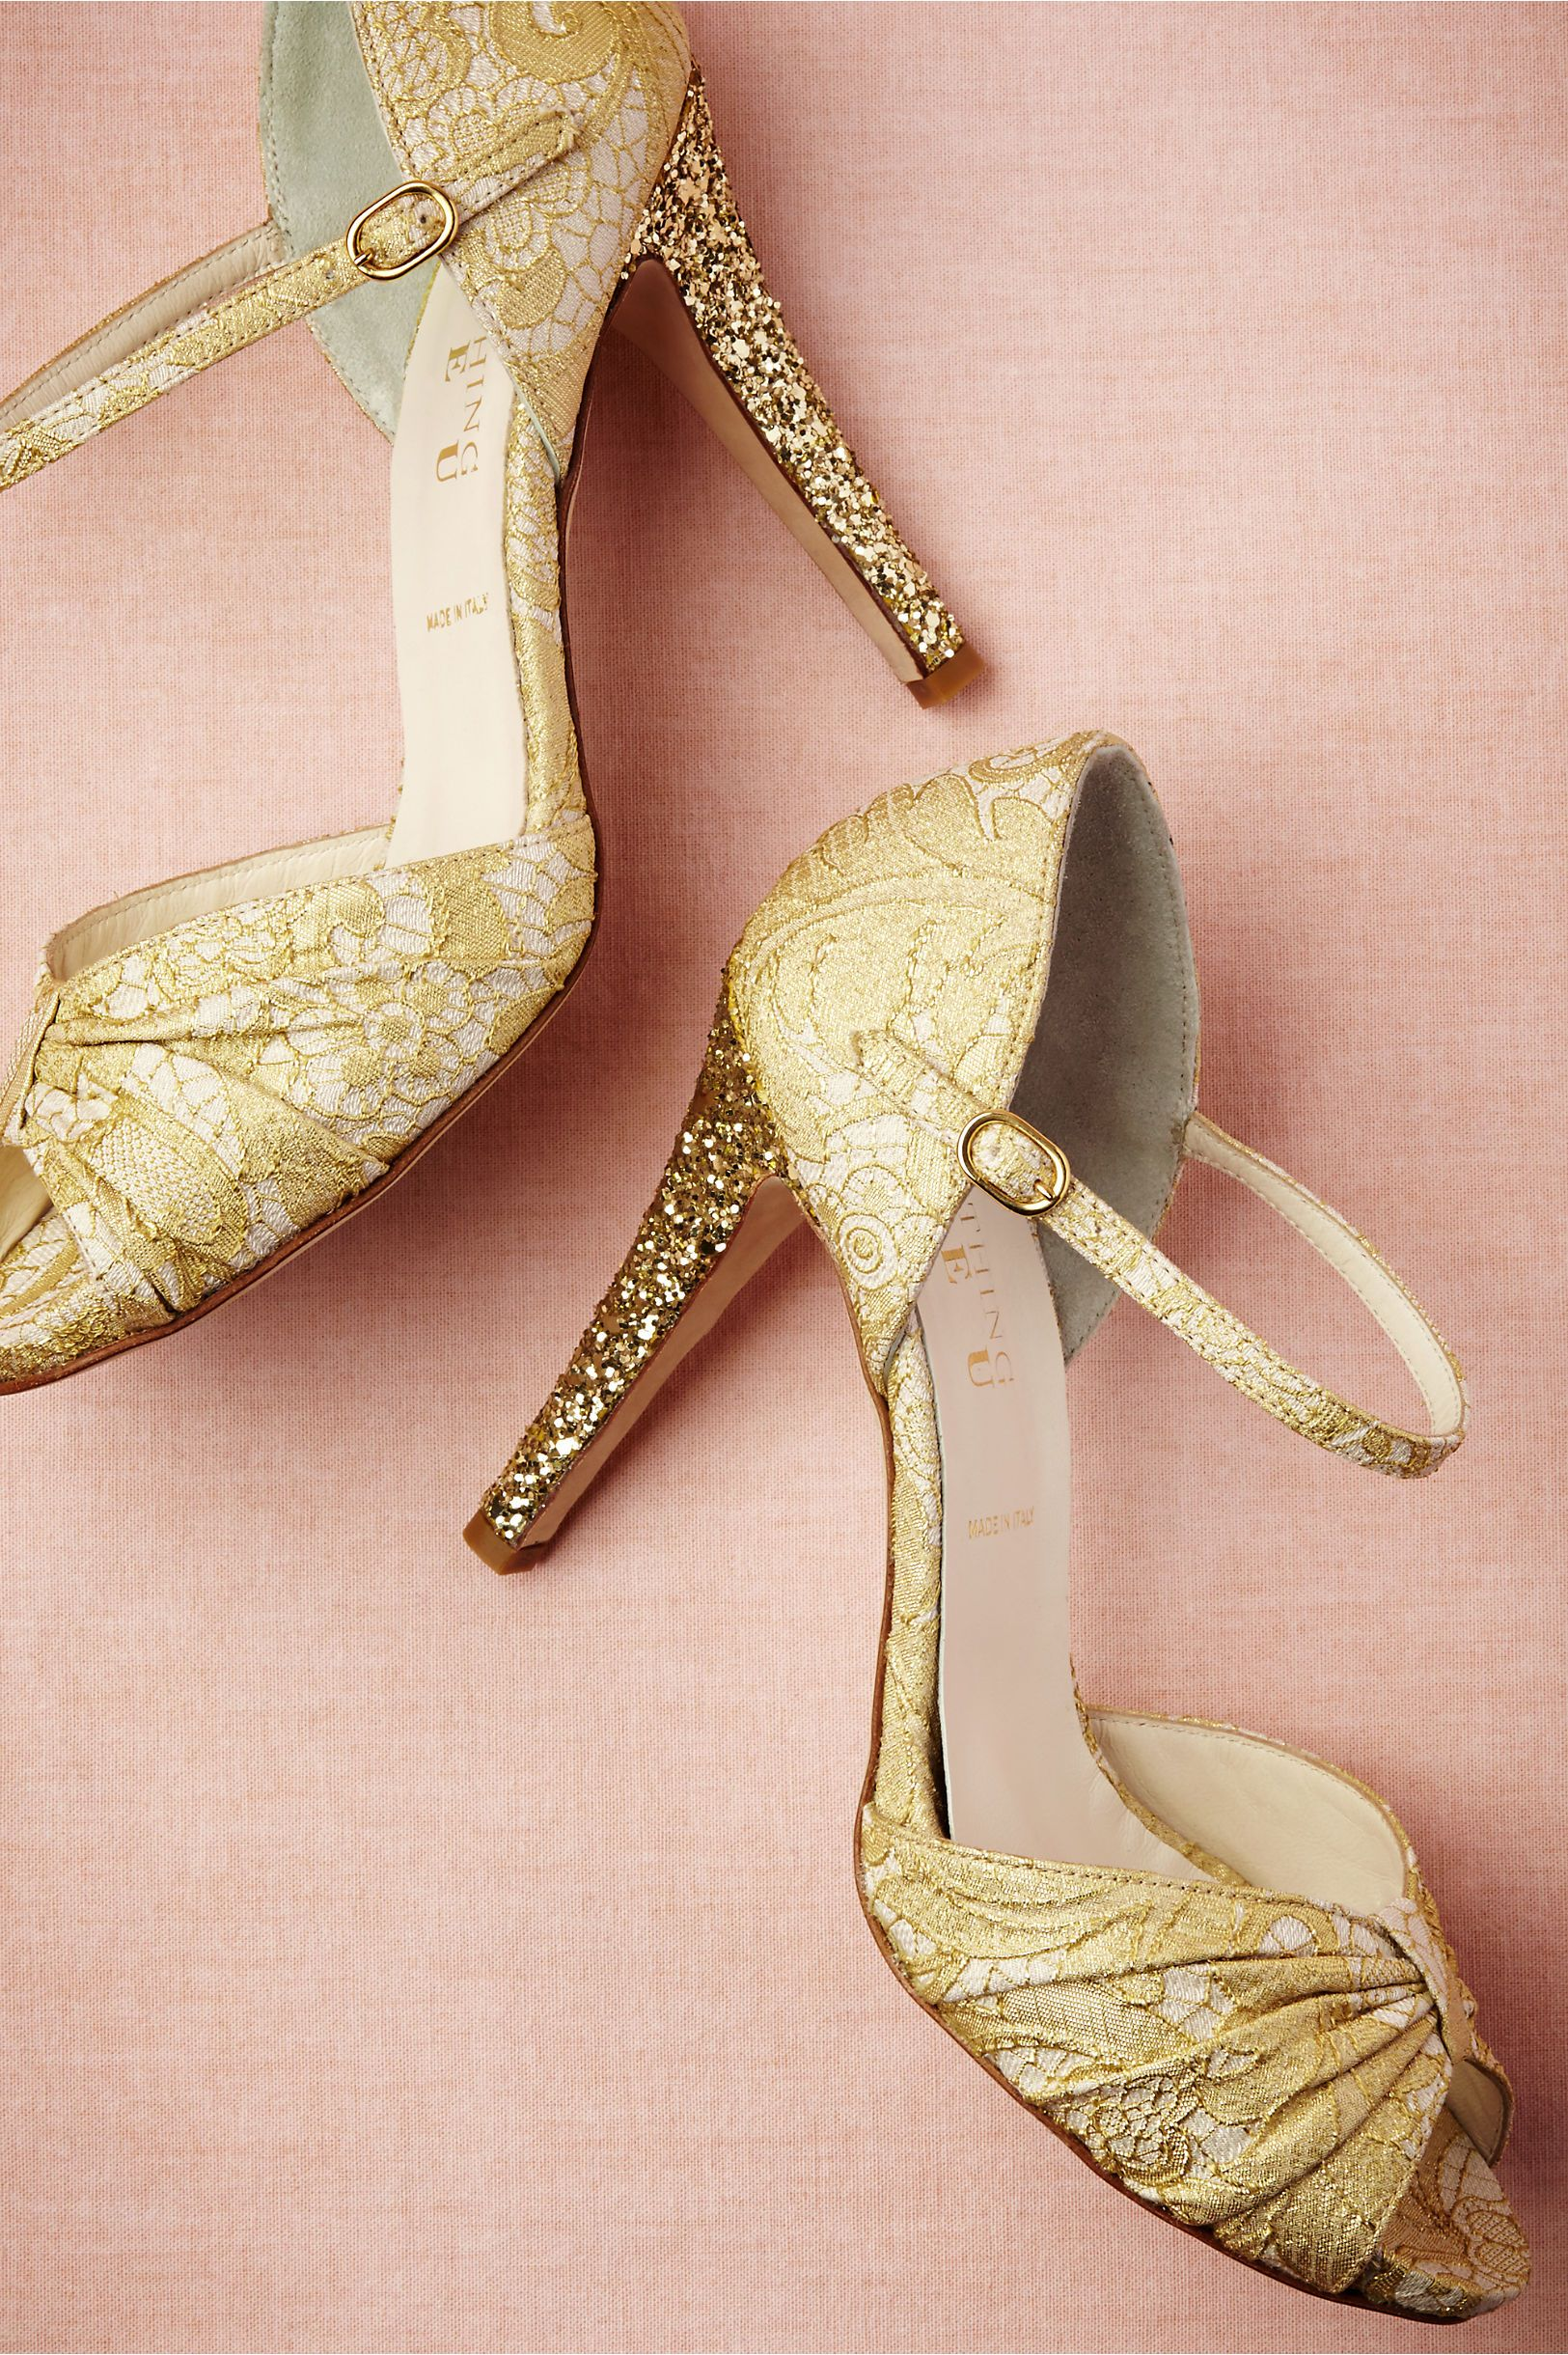 Glittery Gold Heels Yes Please Theperfectpaletteshop Bridal Shoes IvoryGold